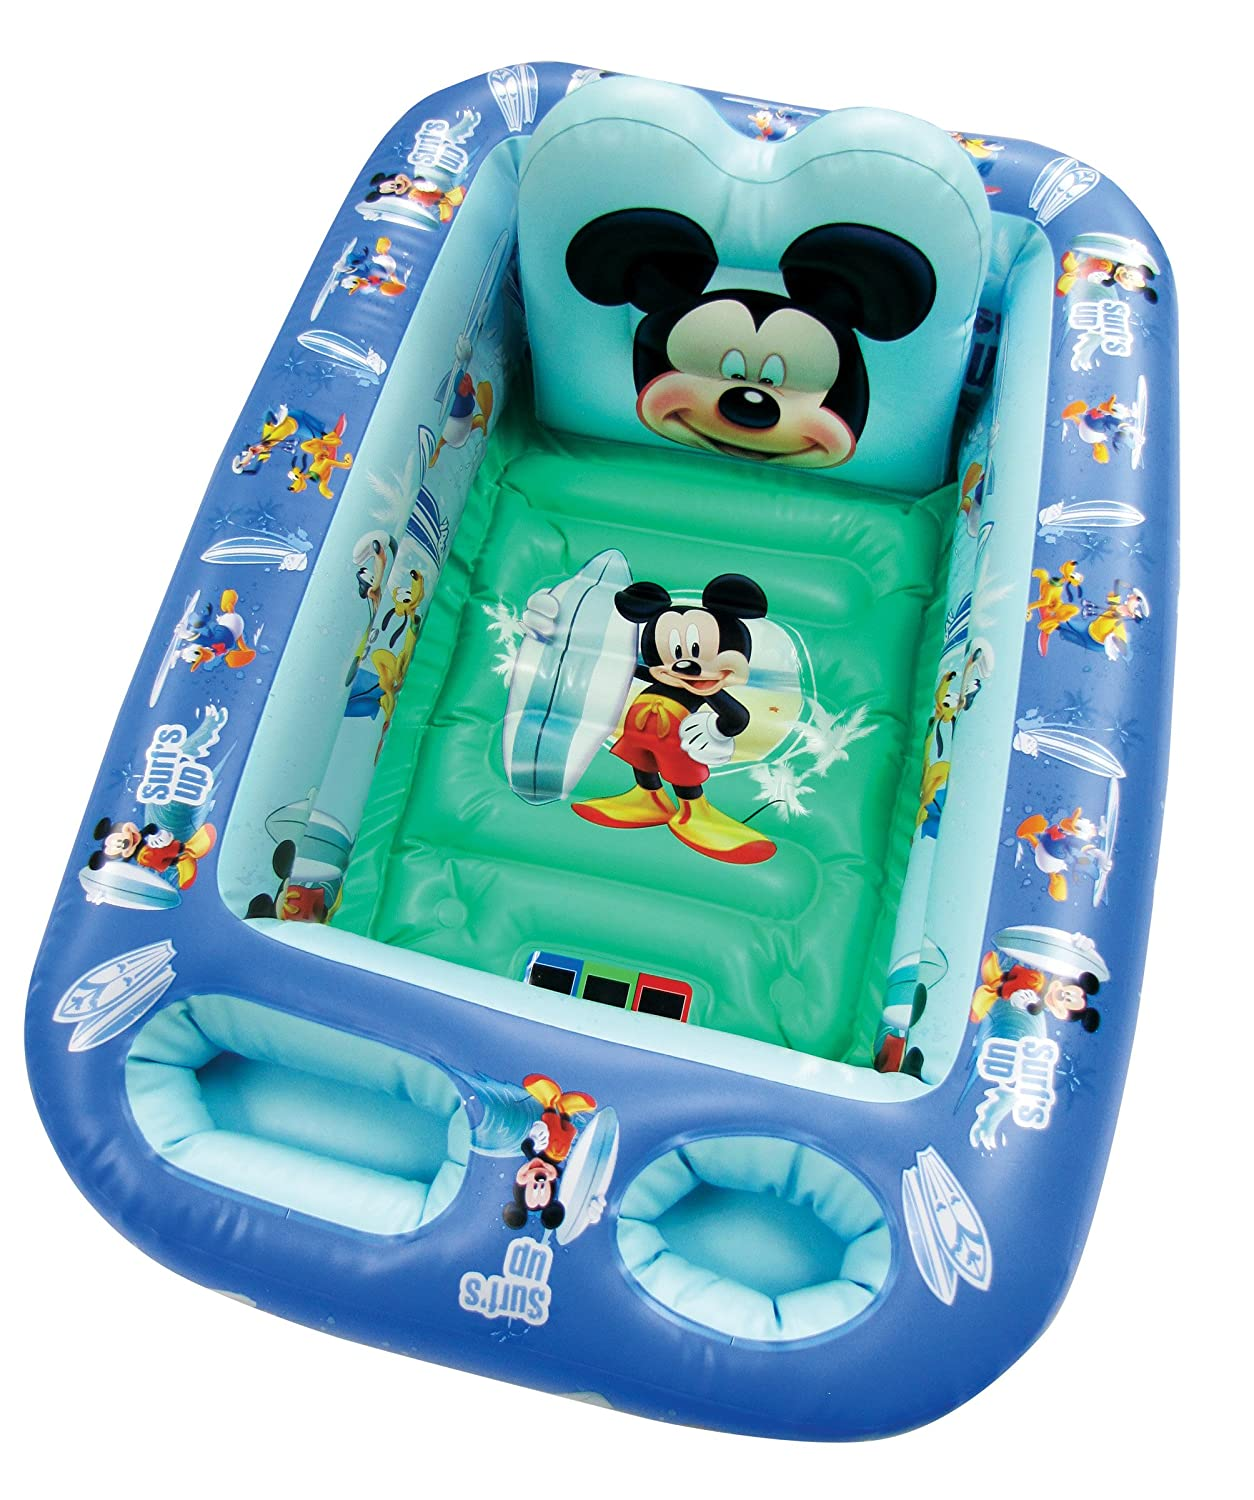 Best Baby Bathtub Reviews - Pools and Tubs